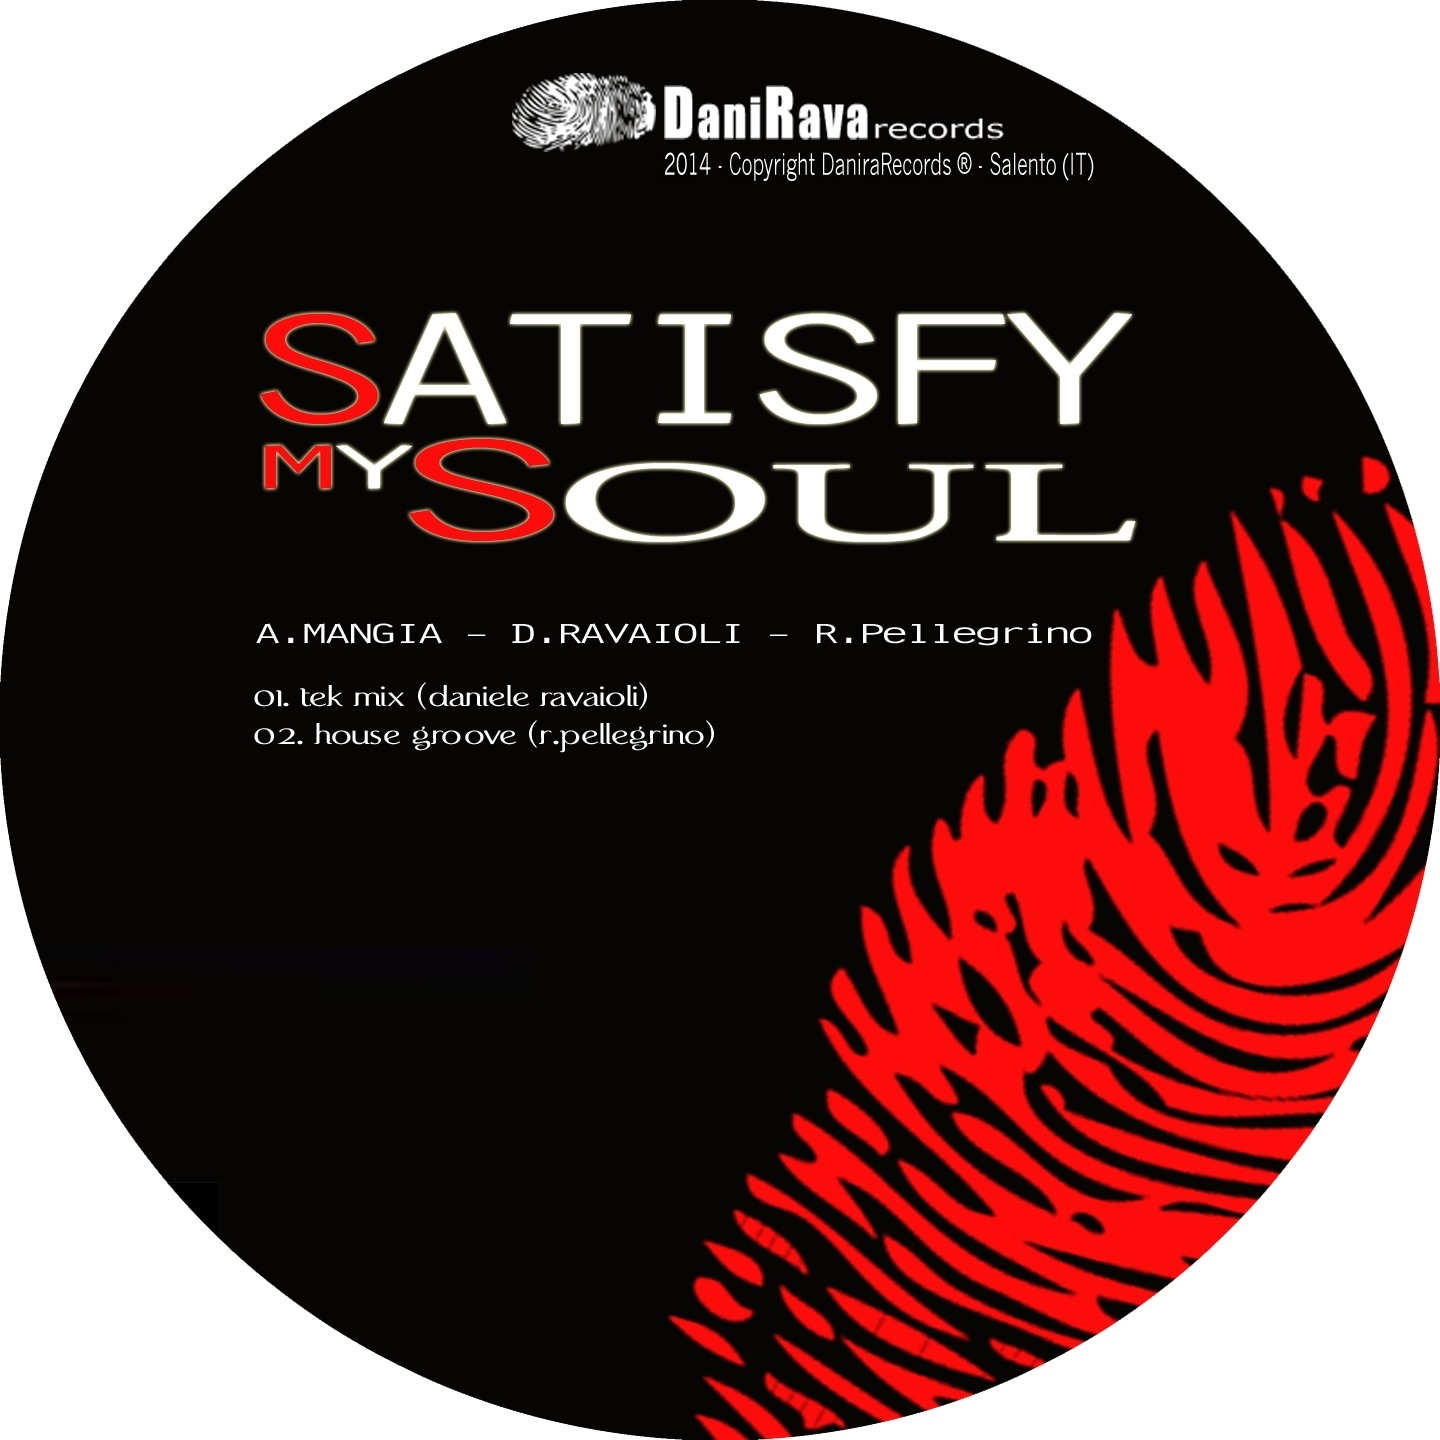 Satisfy My Soul - Single